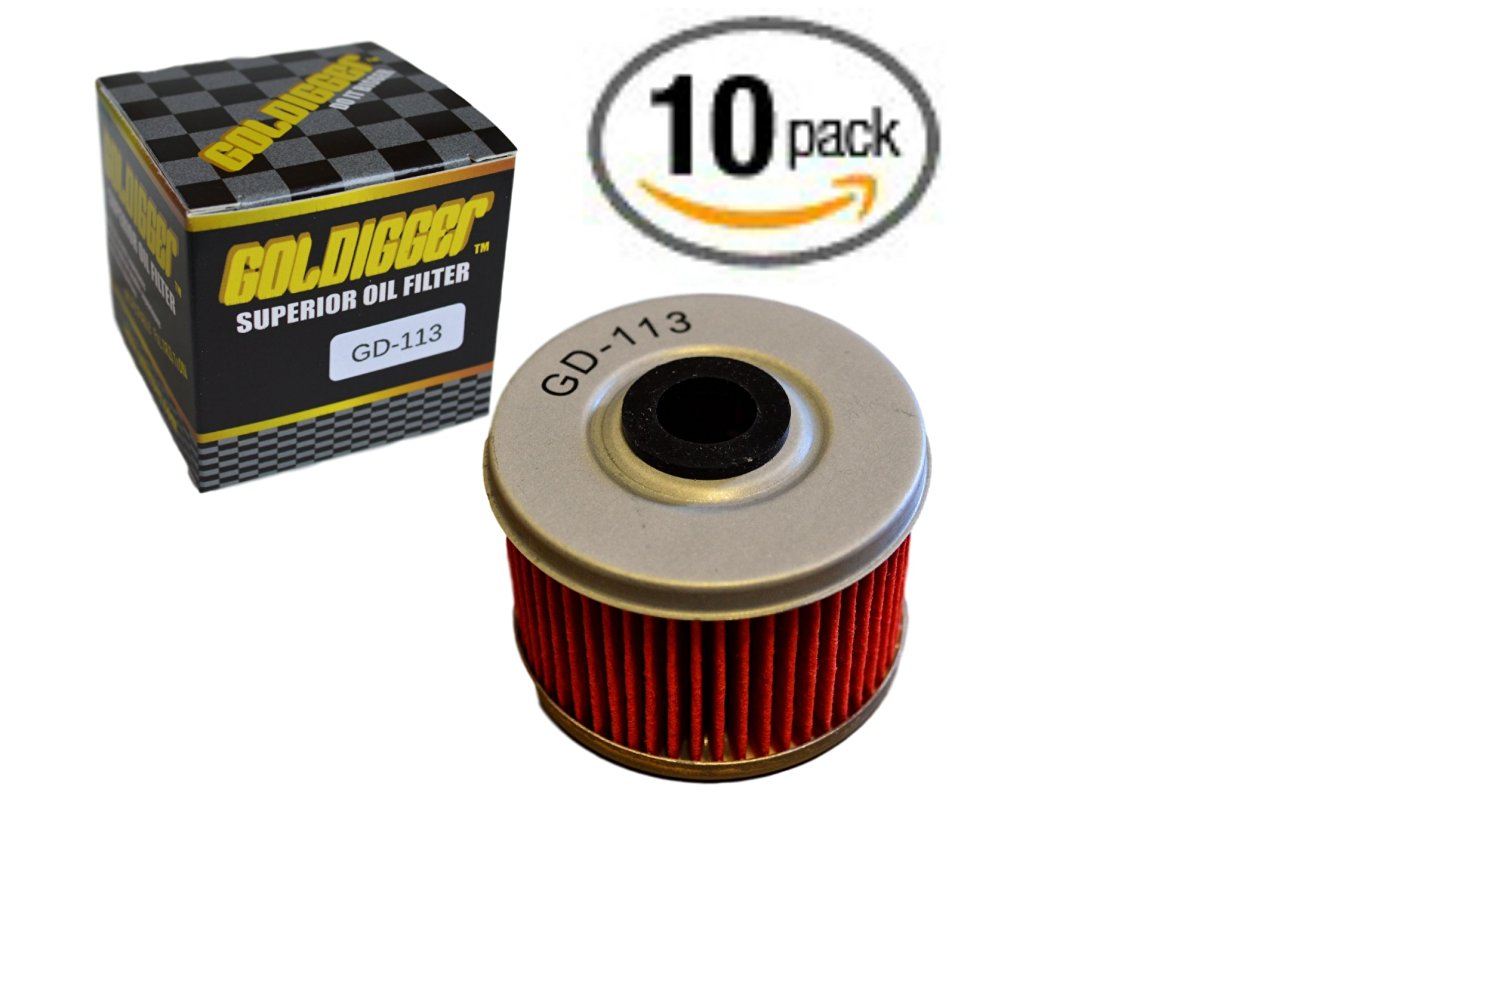 GOLDIGGER After Market HF113 & KN-113 Replacement Oil Filter Motorcycle/Dirt Bike/ATV Fit Honda TRX350 TRX400 FOREMAN RUBICON FOREMAN EX CB400 ATC250ES TRX500 (10 Pack)